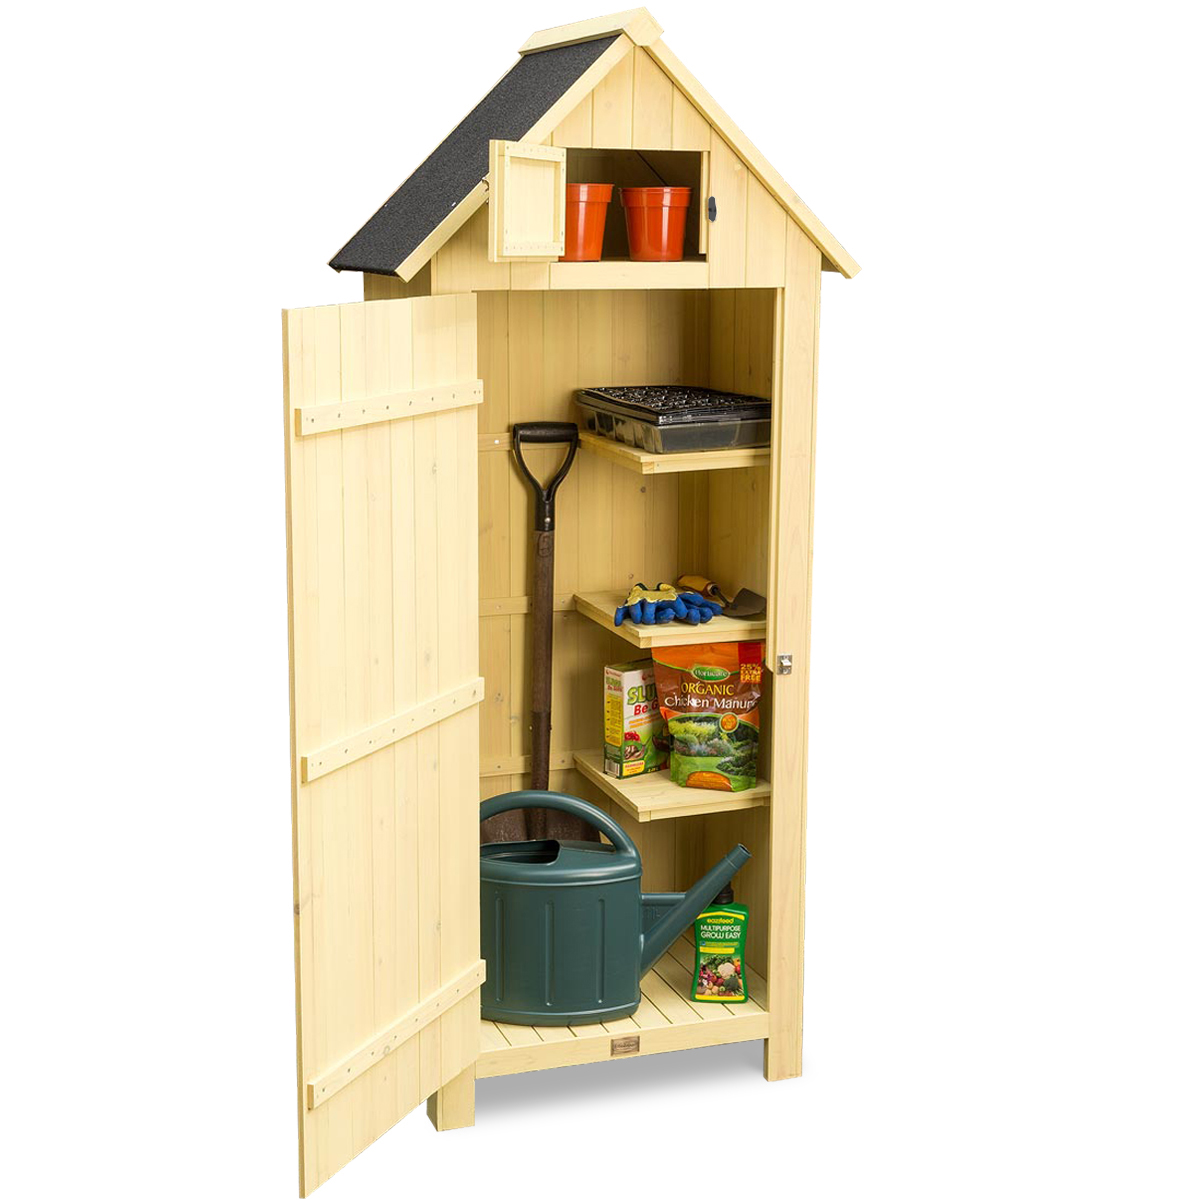 Image of Narrow Garden Shed - Yellow